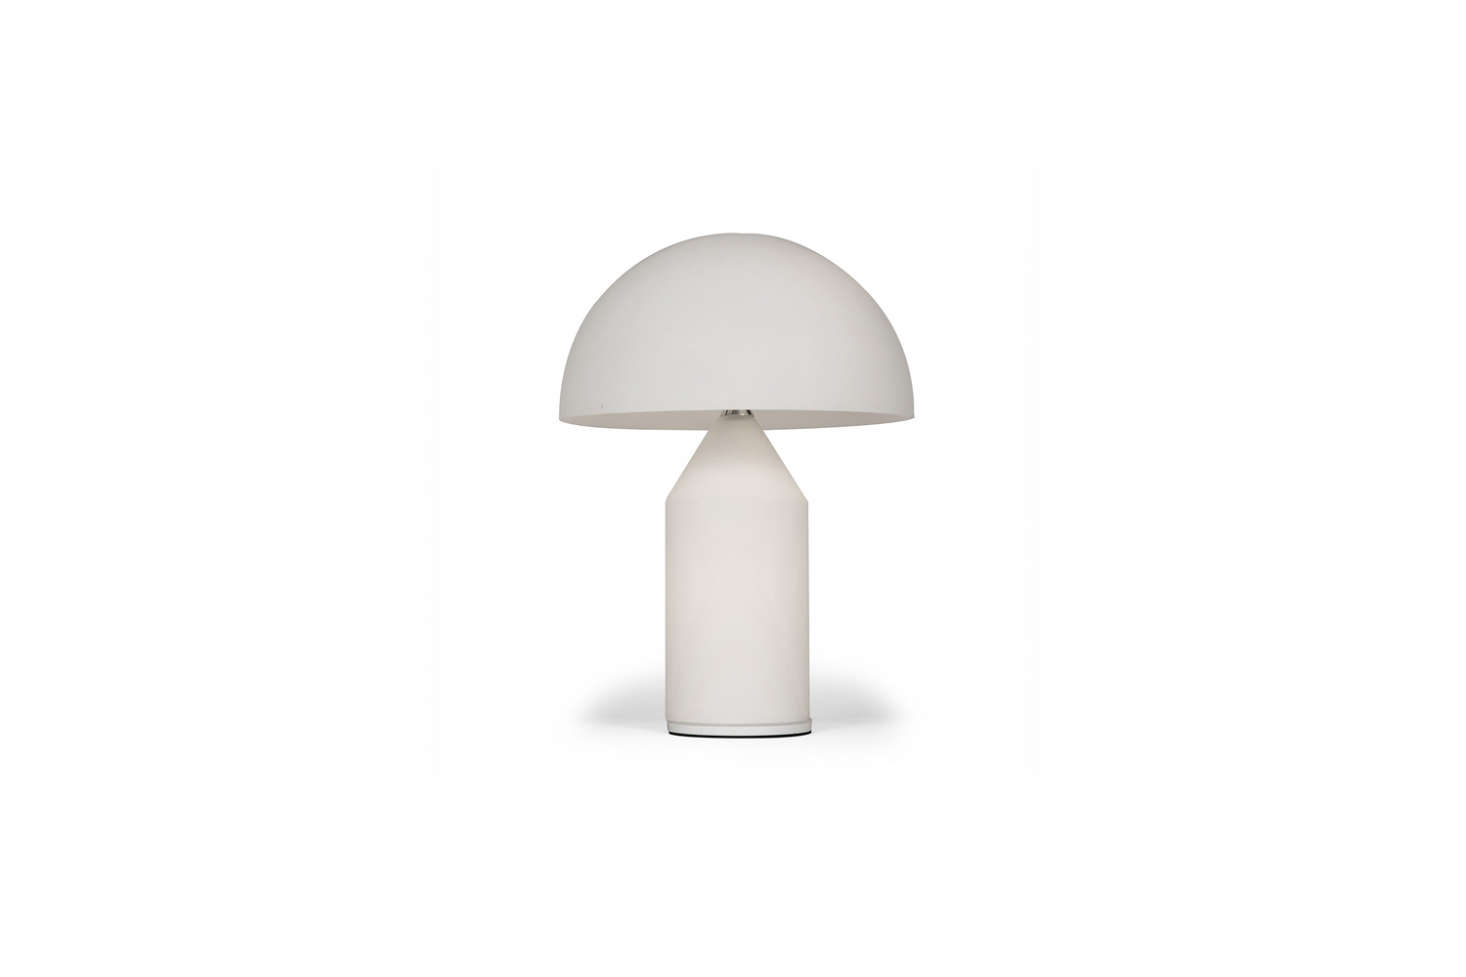 On the desk: The Atollo Table Lamp, by Vico Magistretti for Oluce, has a domed Murano glass diffuser. DWR sells it in two sizes (small and medium); from $990.